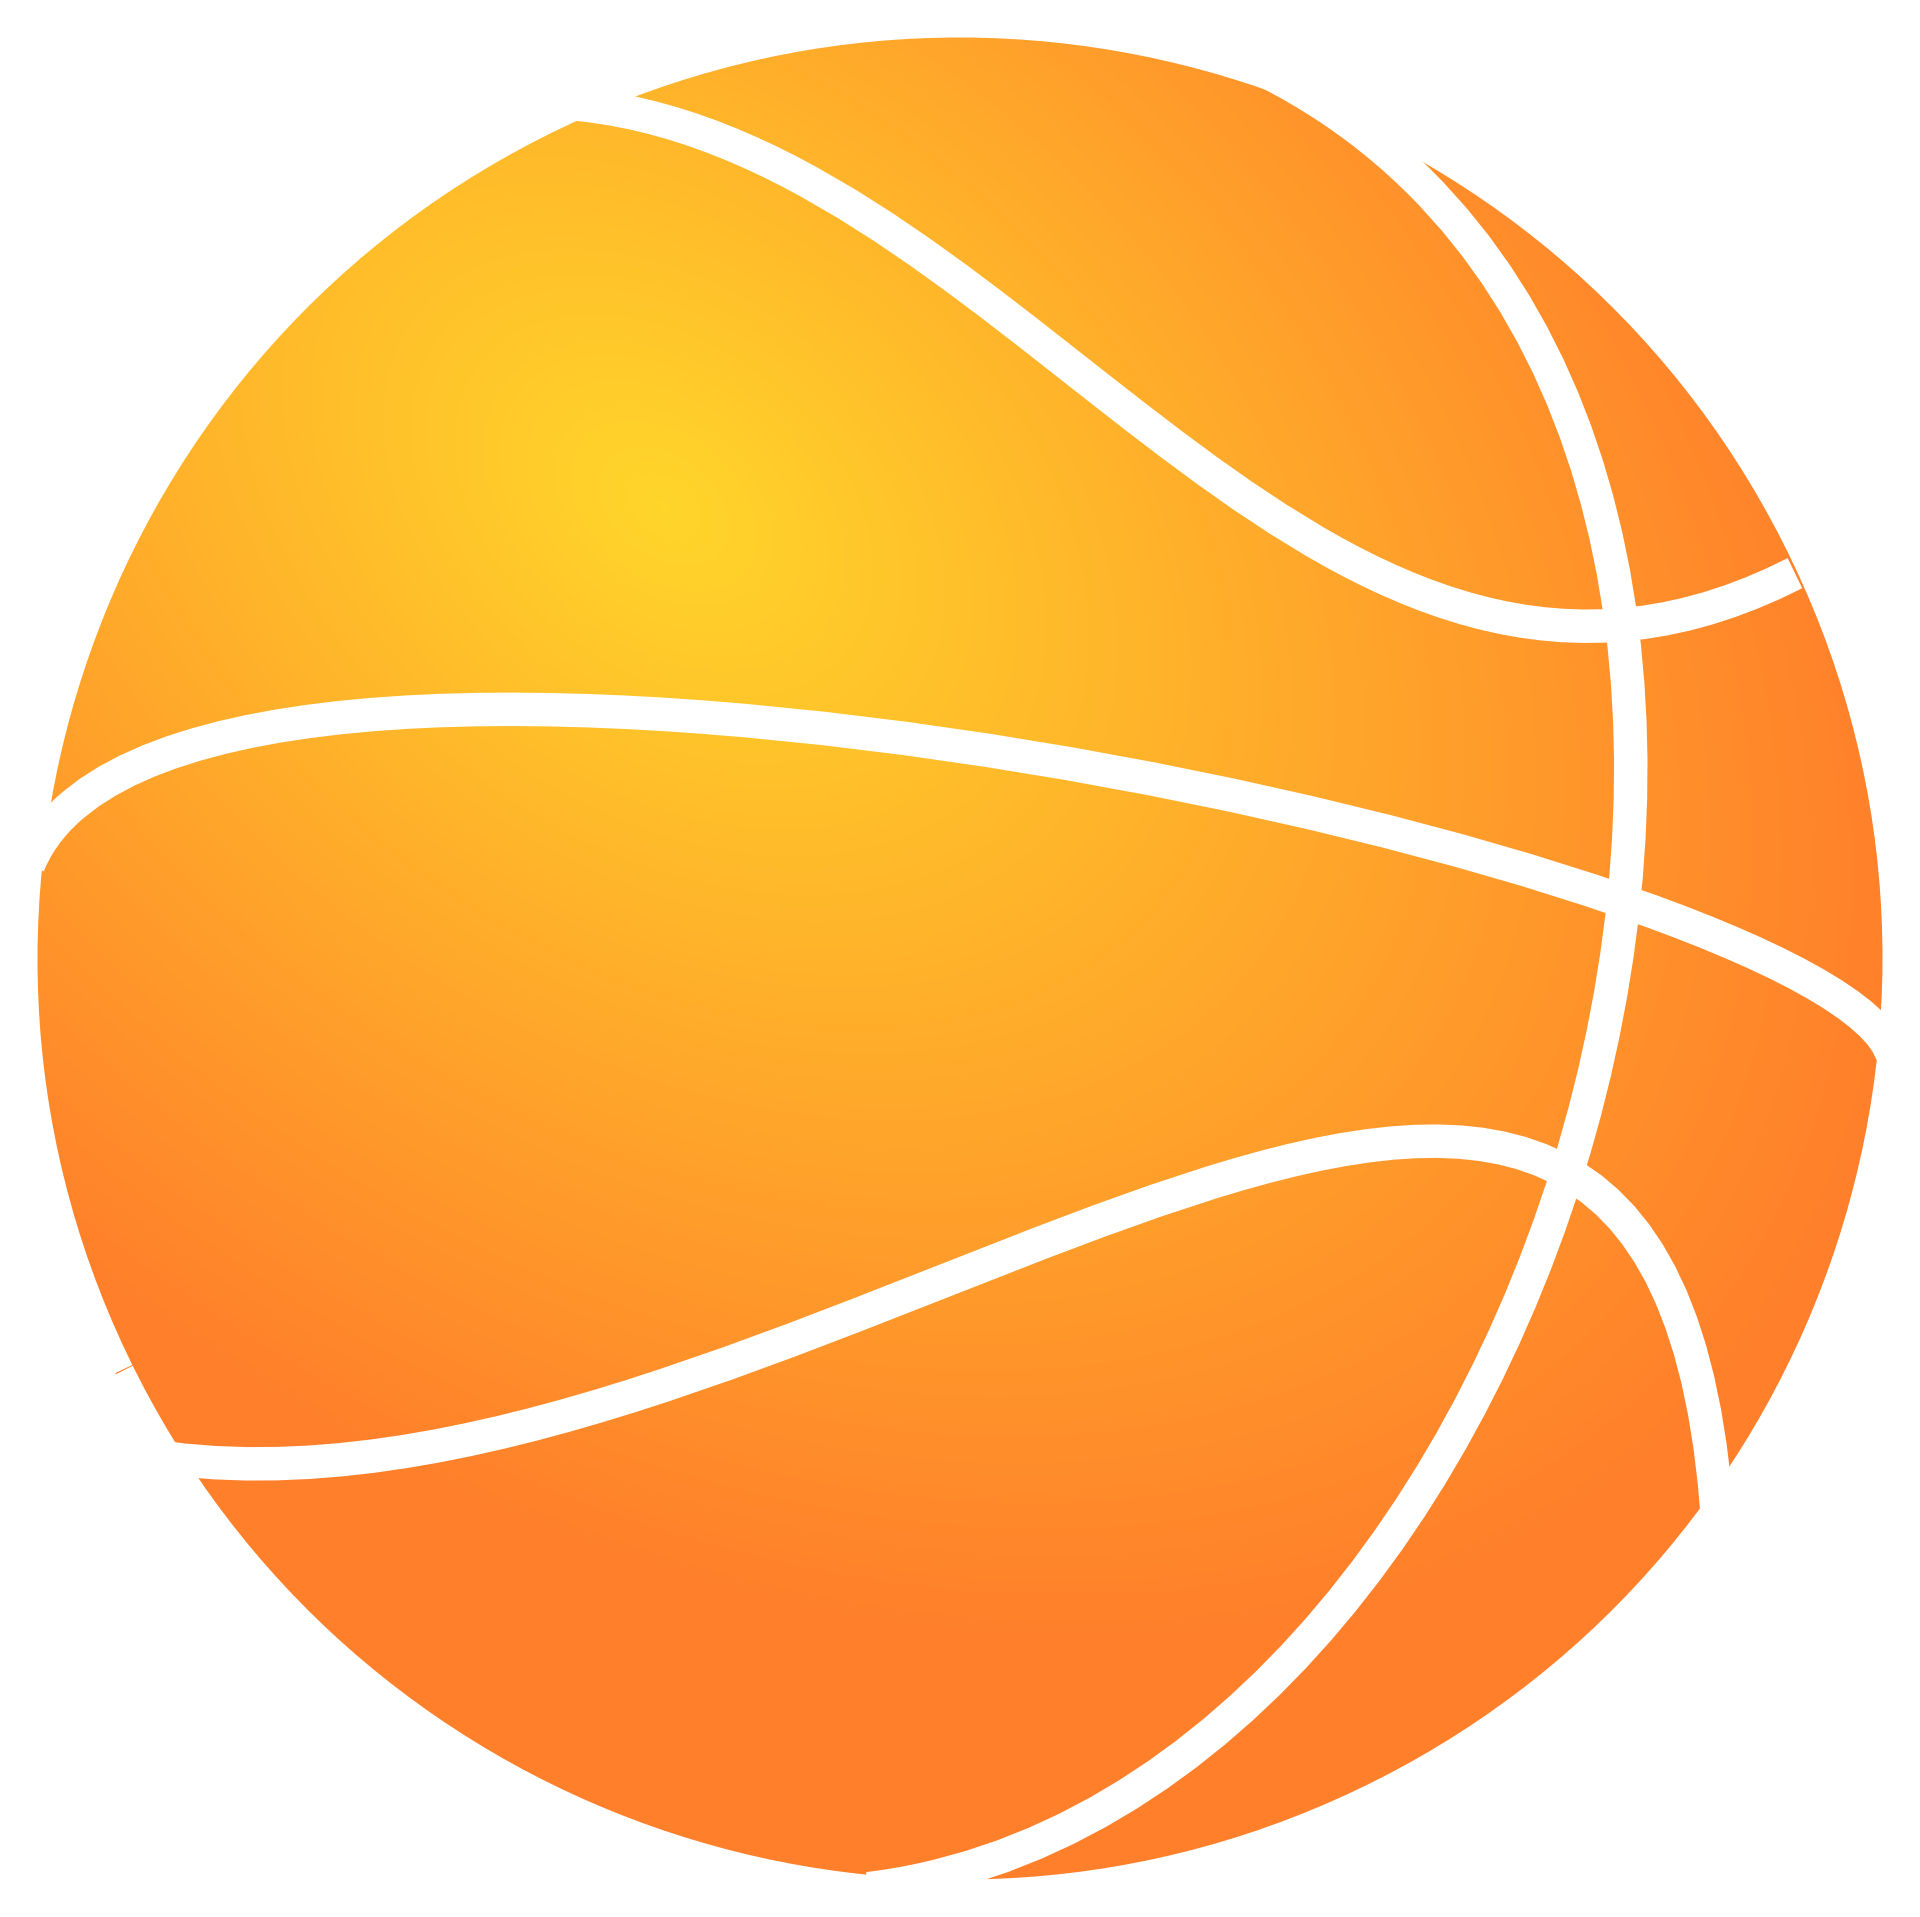 clipart free download Outline of art orange. Basketball clip